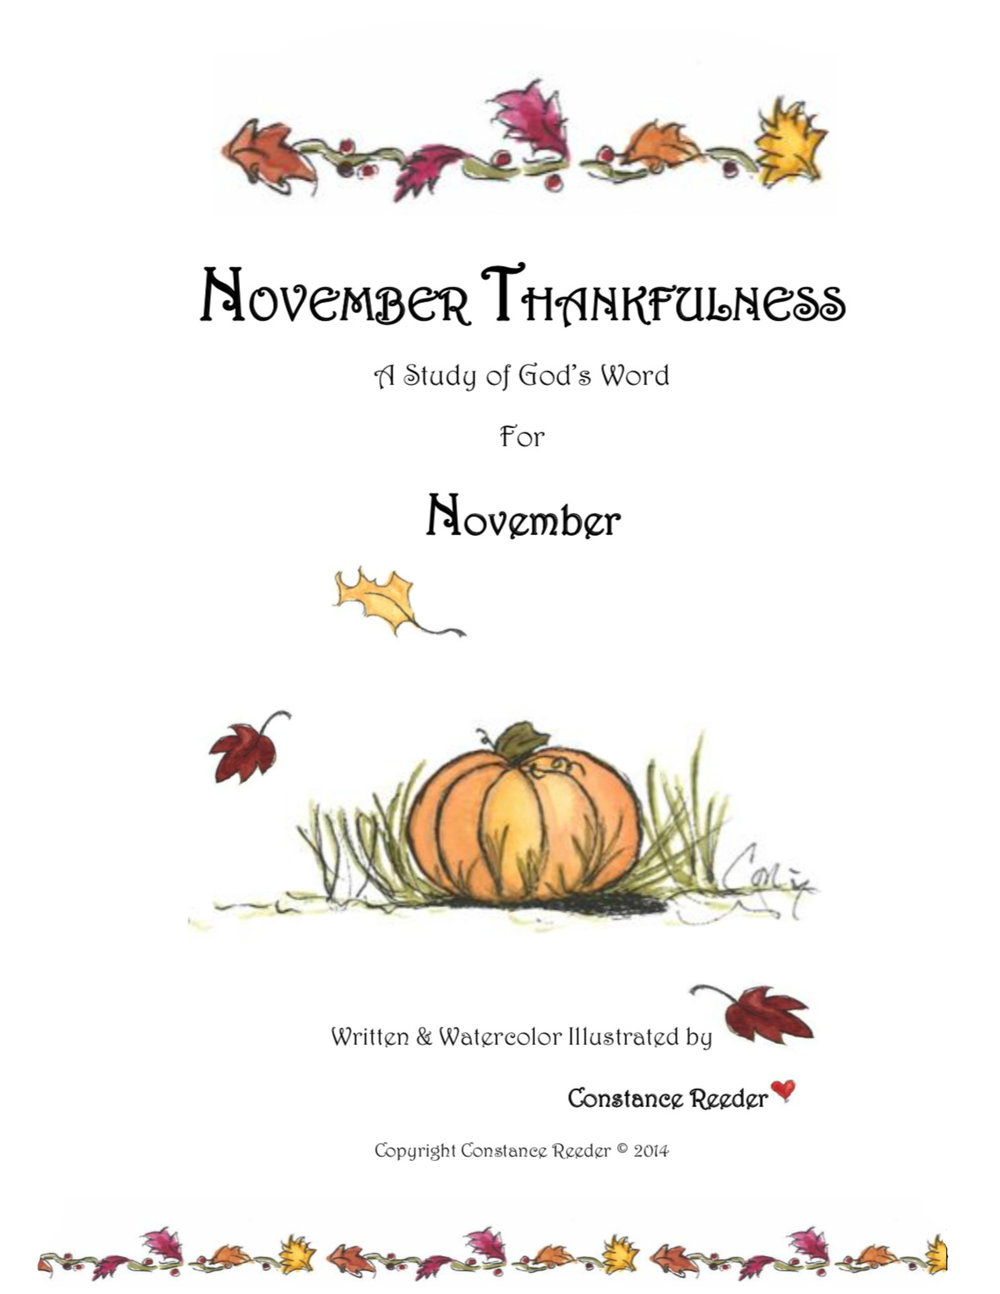 November Thankfulness a Bible Study written and illustrated by Constance Reeder